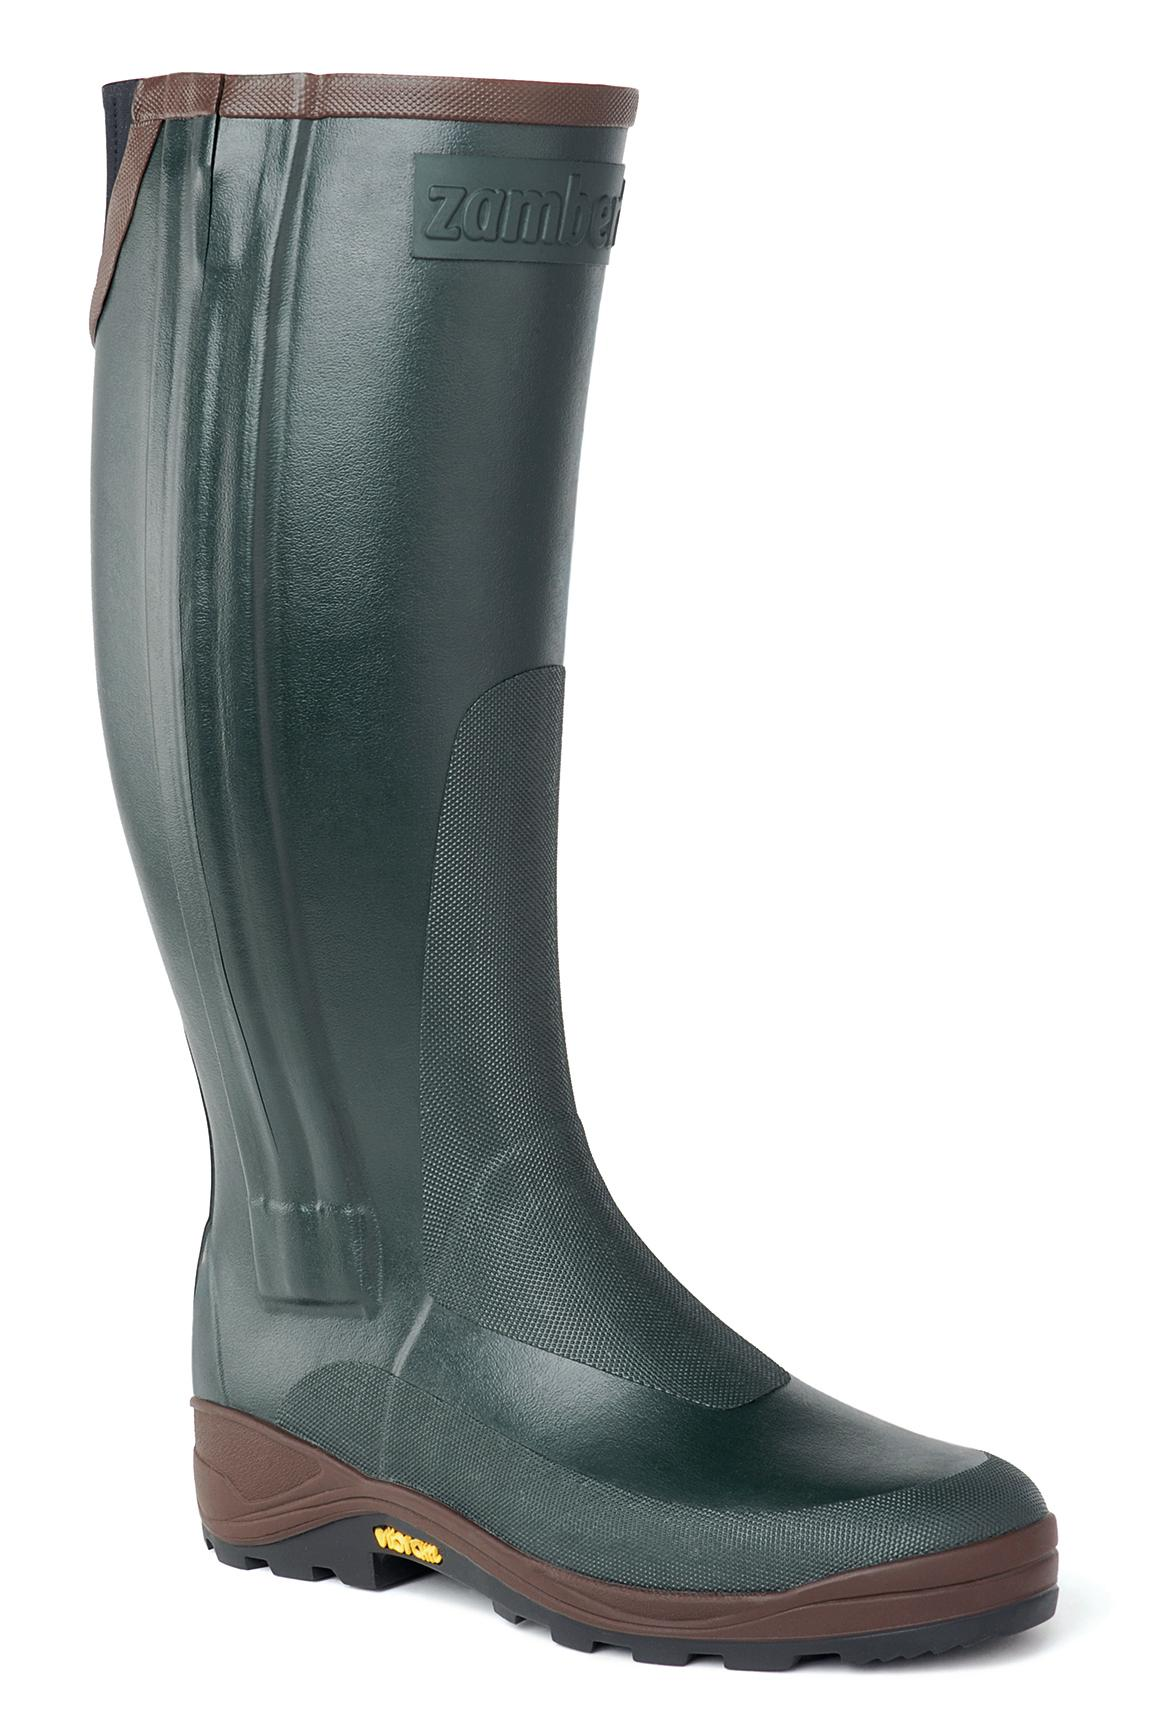 S10 BOOTS  CANADA N.   -   Hunting  Rubber boots   -   Dark Green